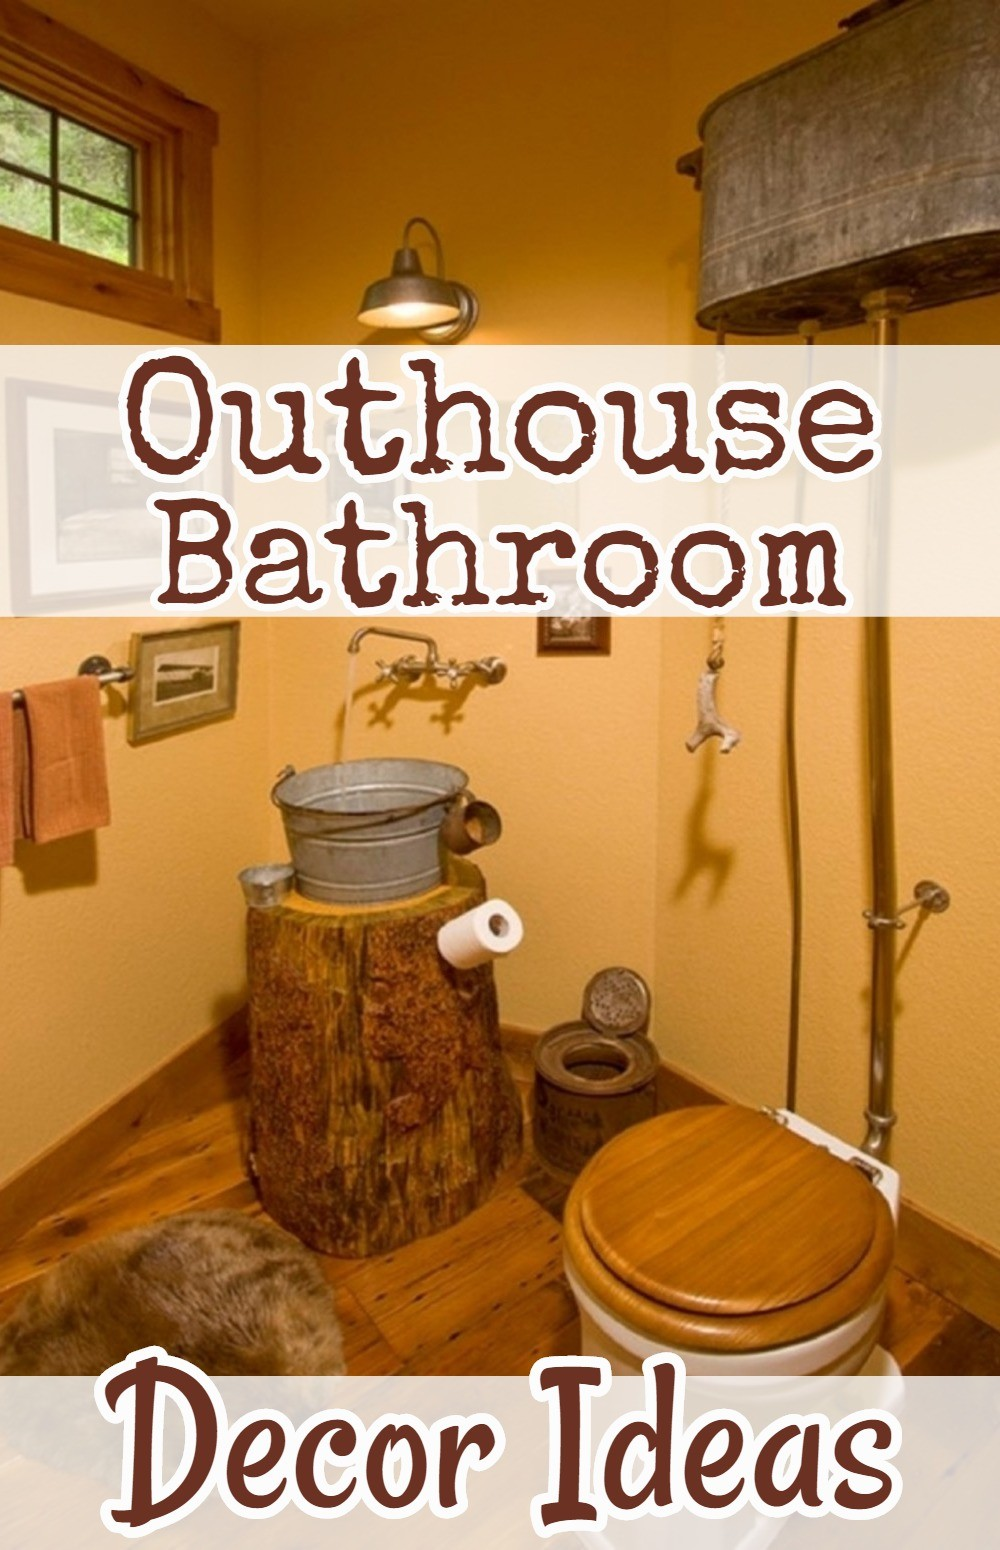 Country Outhouse Bathroom Decor/Redecorating Ideas